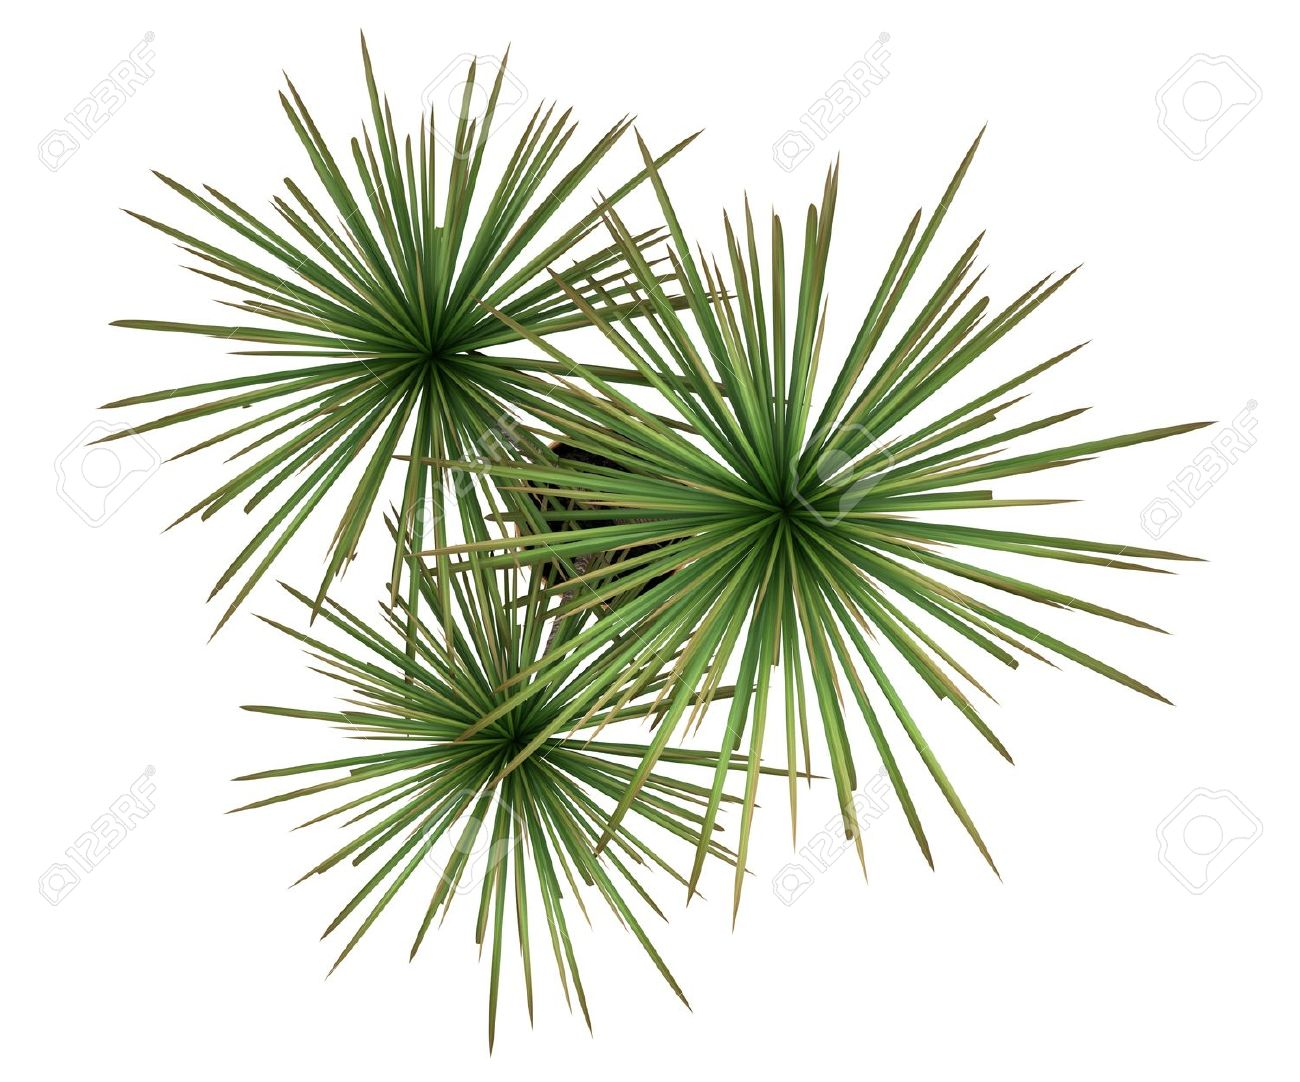 Top View Of Dracaena Plant In Pot Isolated On White Background Stock